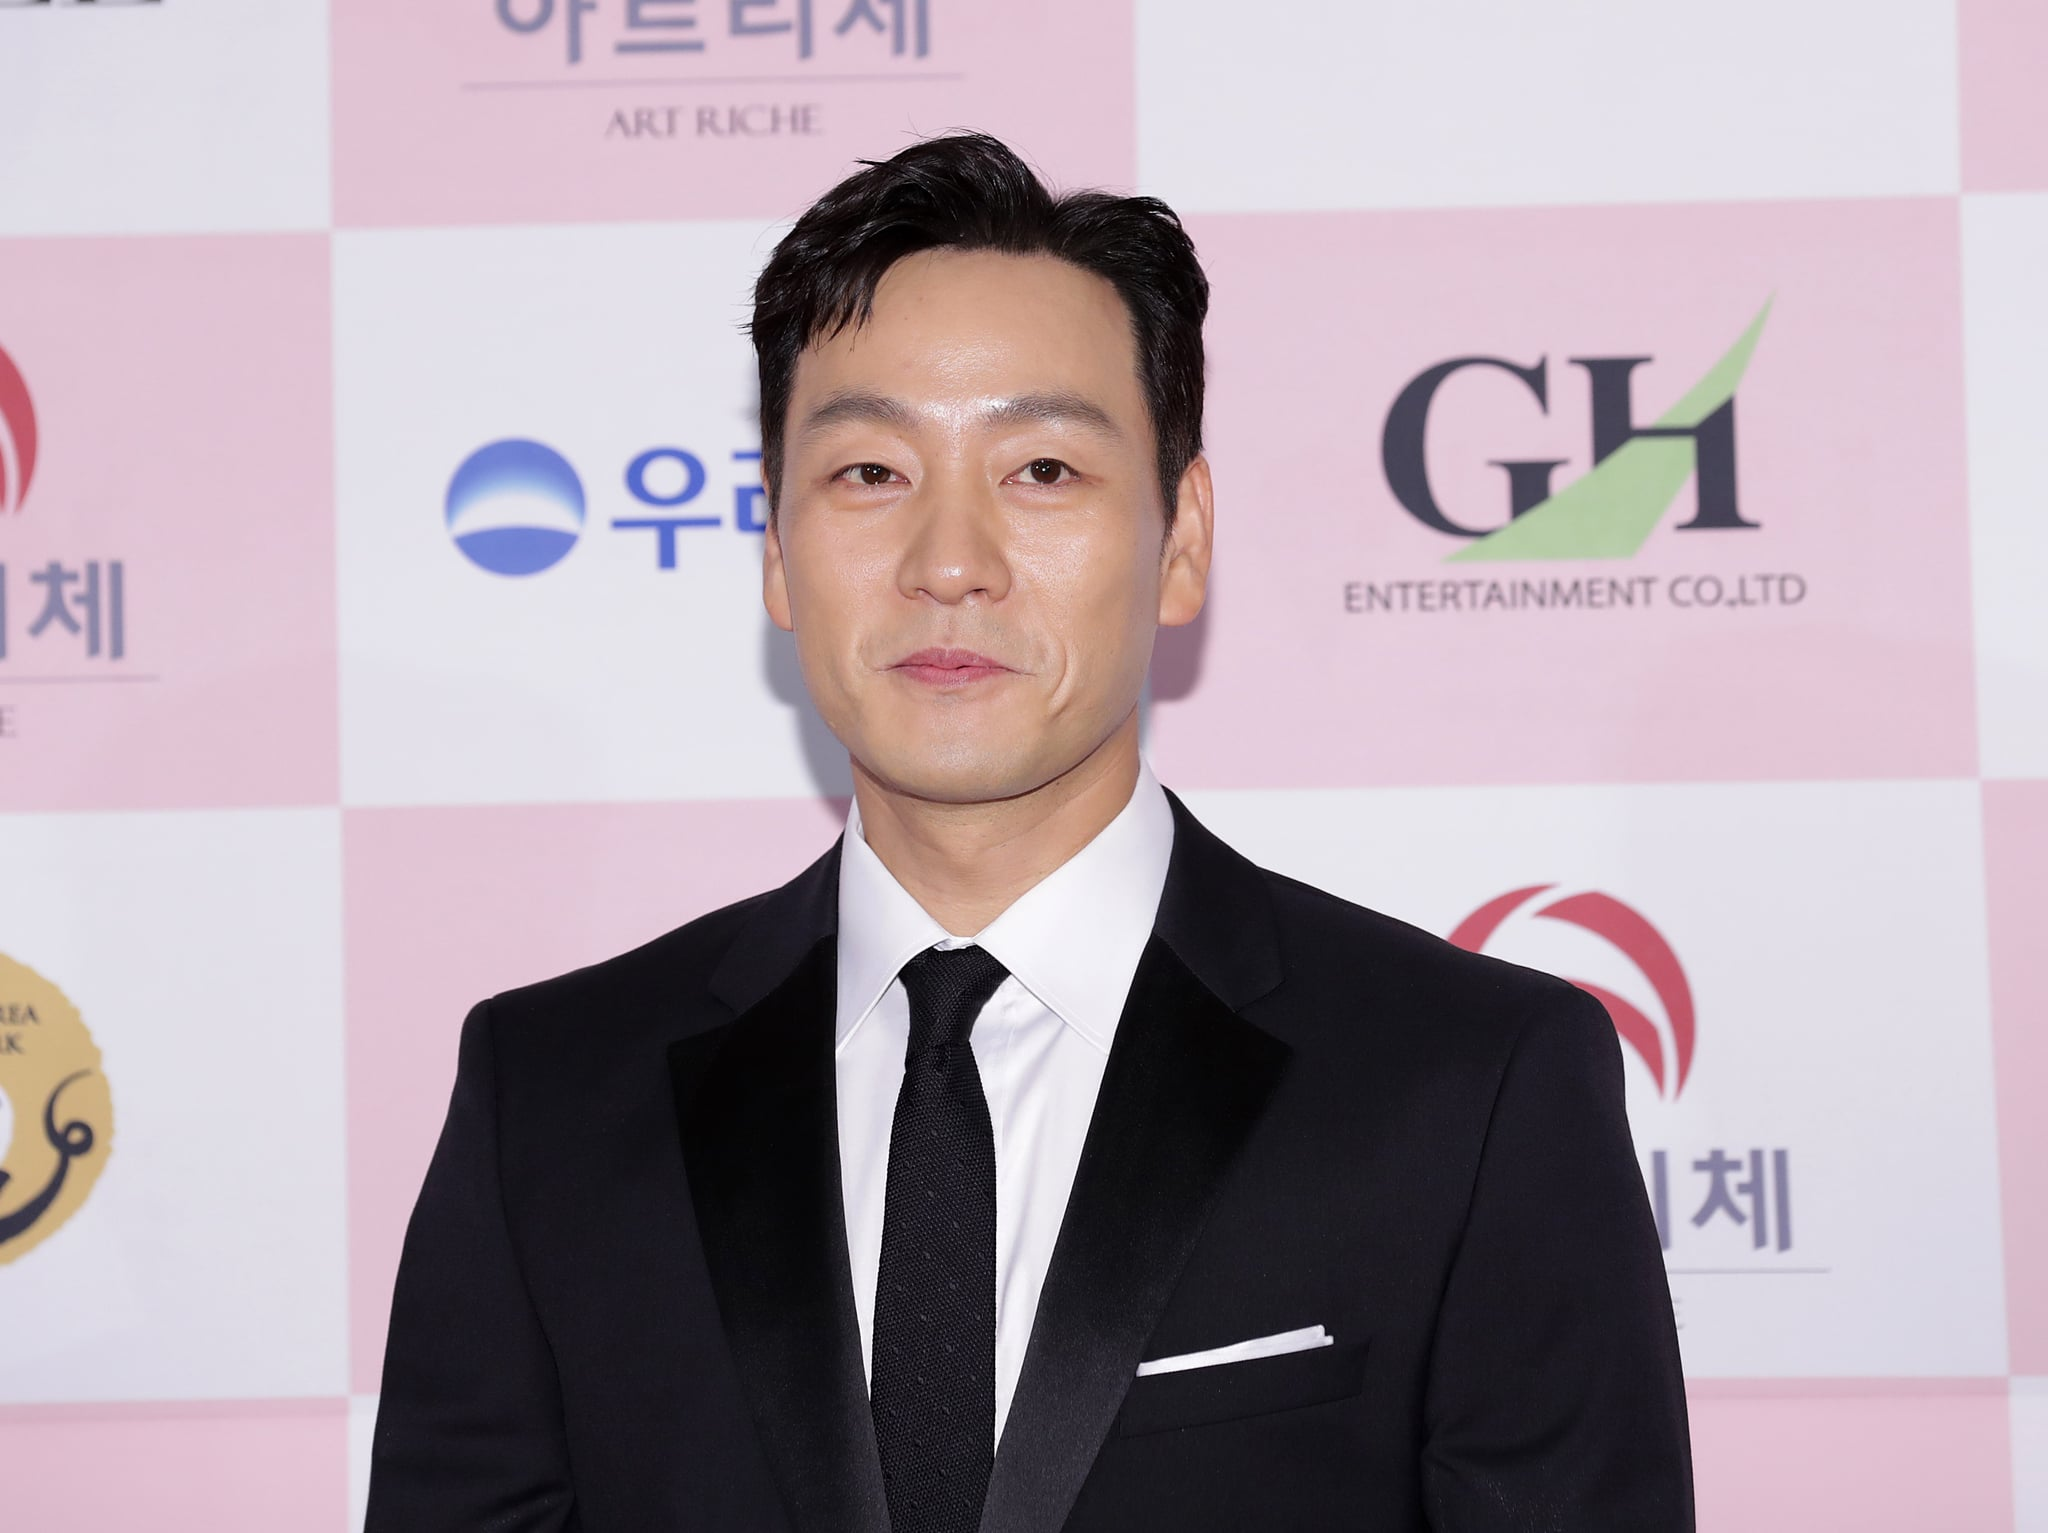 SEOUL, SOUTH KOREA - JUNE 03: South Korean actor Park Hae-Soo attends the 56th Daejong Film Awards at Grand Wallhill hotel on June 03, 2020 in Seoul, South Korea.  (Photo by Myunggu Han/WireImage)